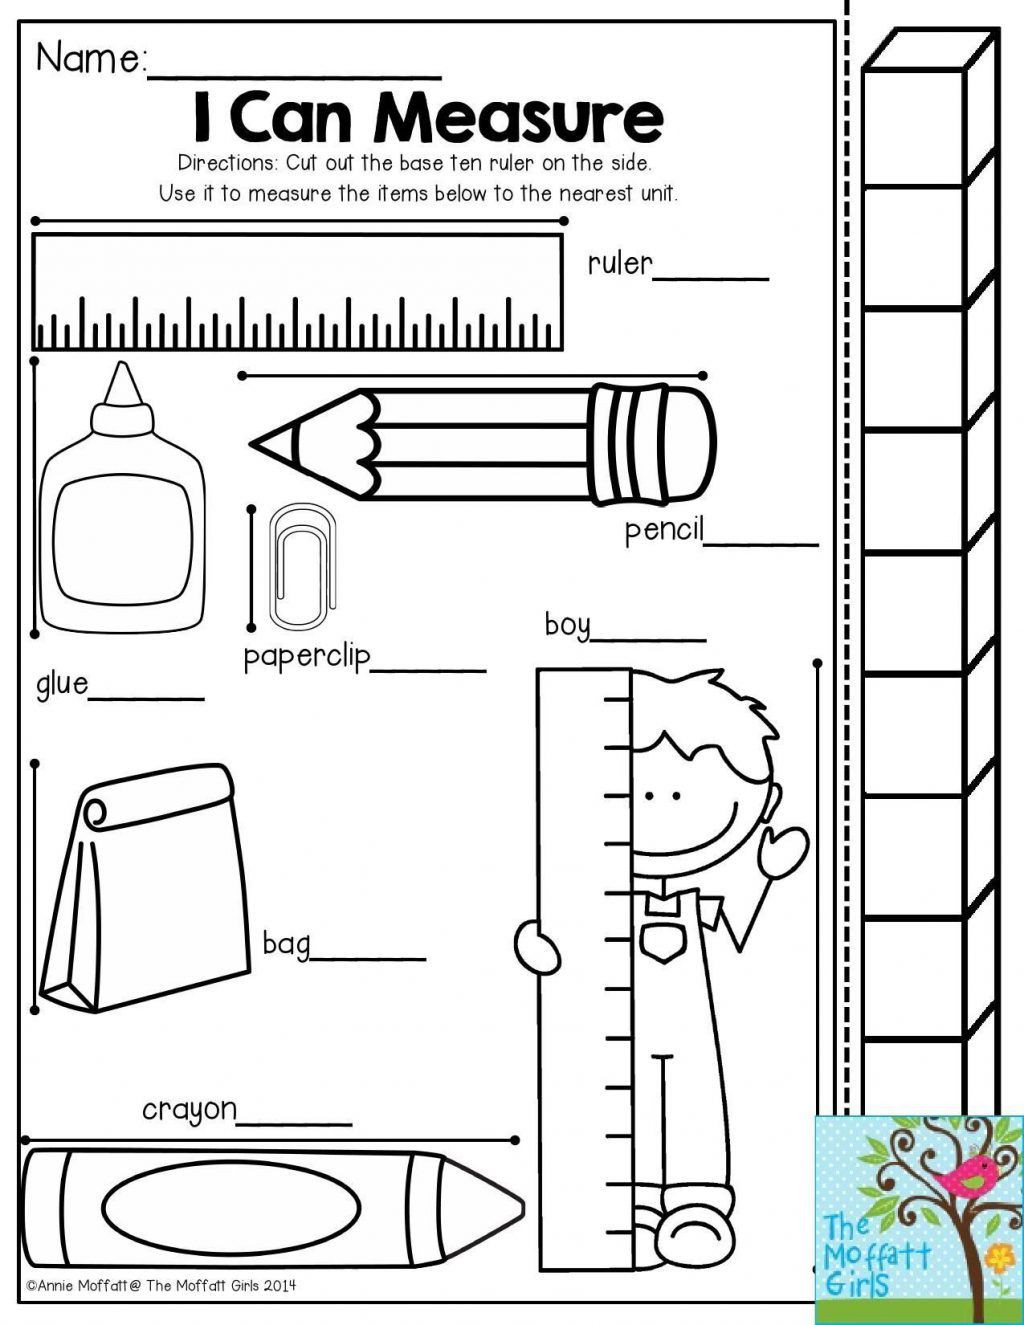 Free Measurement Worksheets Grade 1 Free 1st Grade Measurement Worksheets 1st Grade